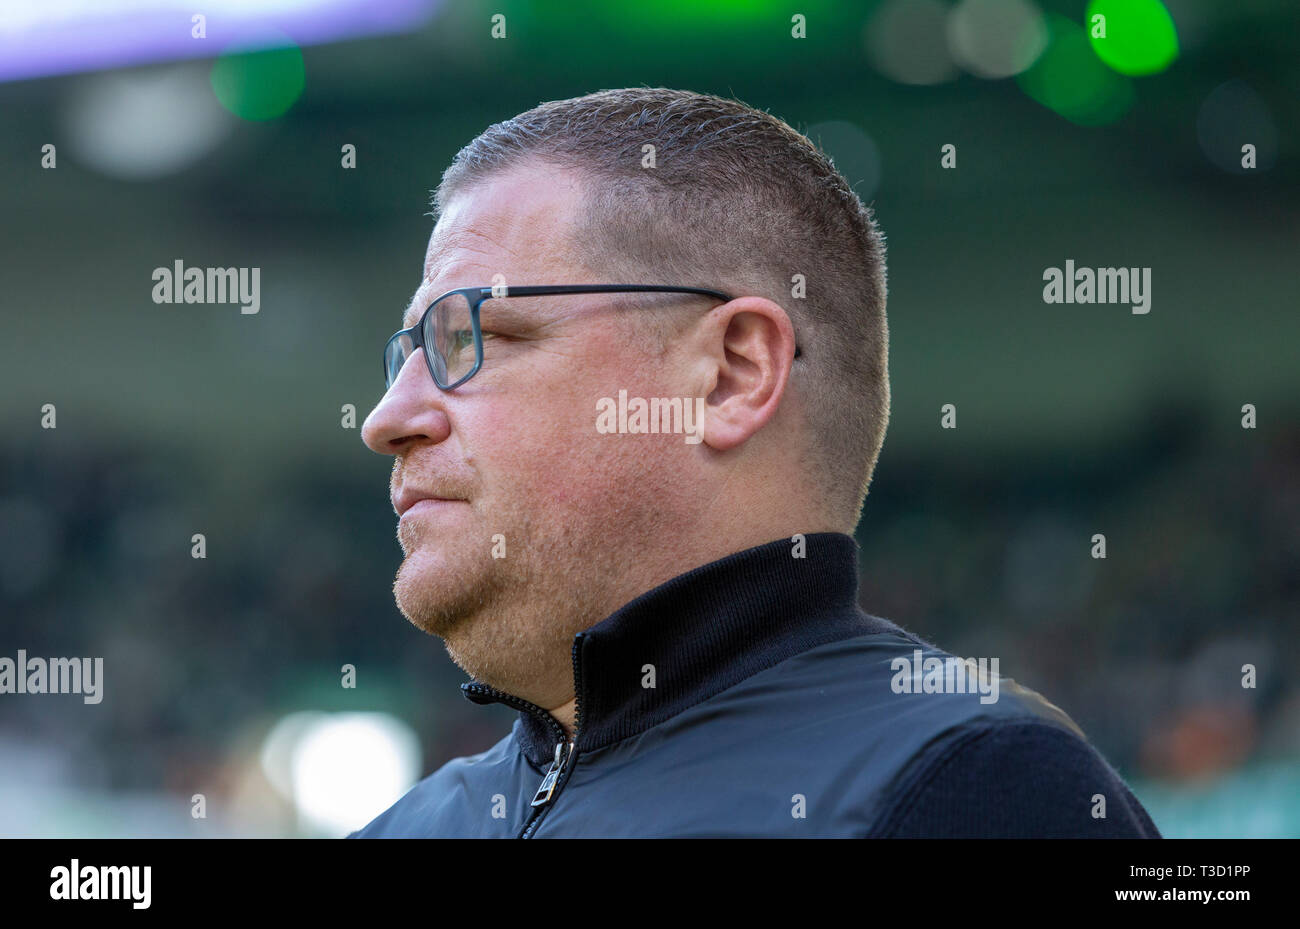 sports, football, Bundesliga, 2018/2019, Borussia Moenchengladbach vs SV Werder Bremen 1-1, Stadium Borussia Park, sports director Max Eberl (MG), DFL REGULATIONS PROHIBIT ANY USE OF PHOTOGRAPHS AS IMAGE SEQUENCES AND/OR QUASI-VIDEO - Stock Image